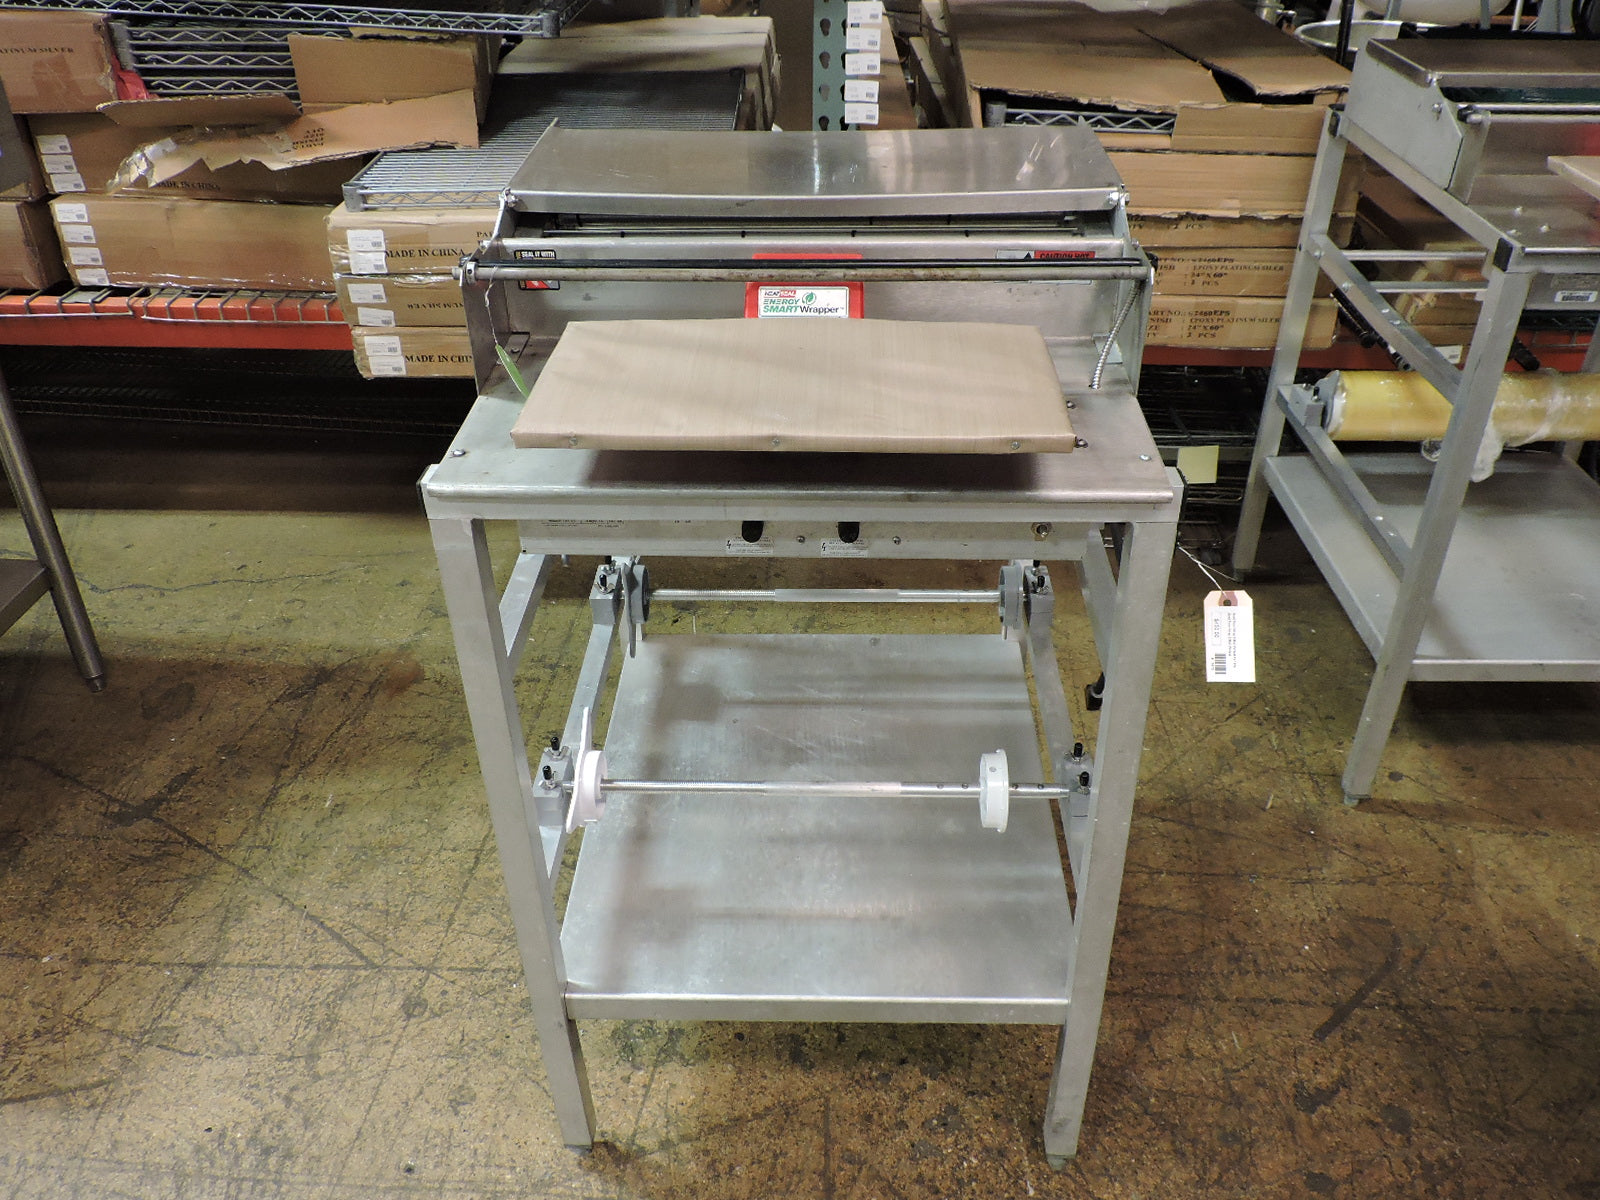 superior-equipment-supply - Heat Seal - Used Heat Seal Wrapper Floor Model  - Save Big!